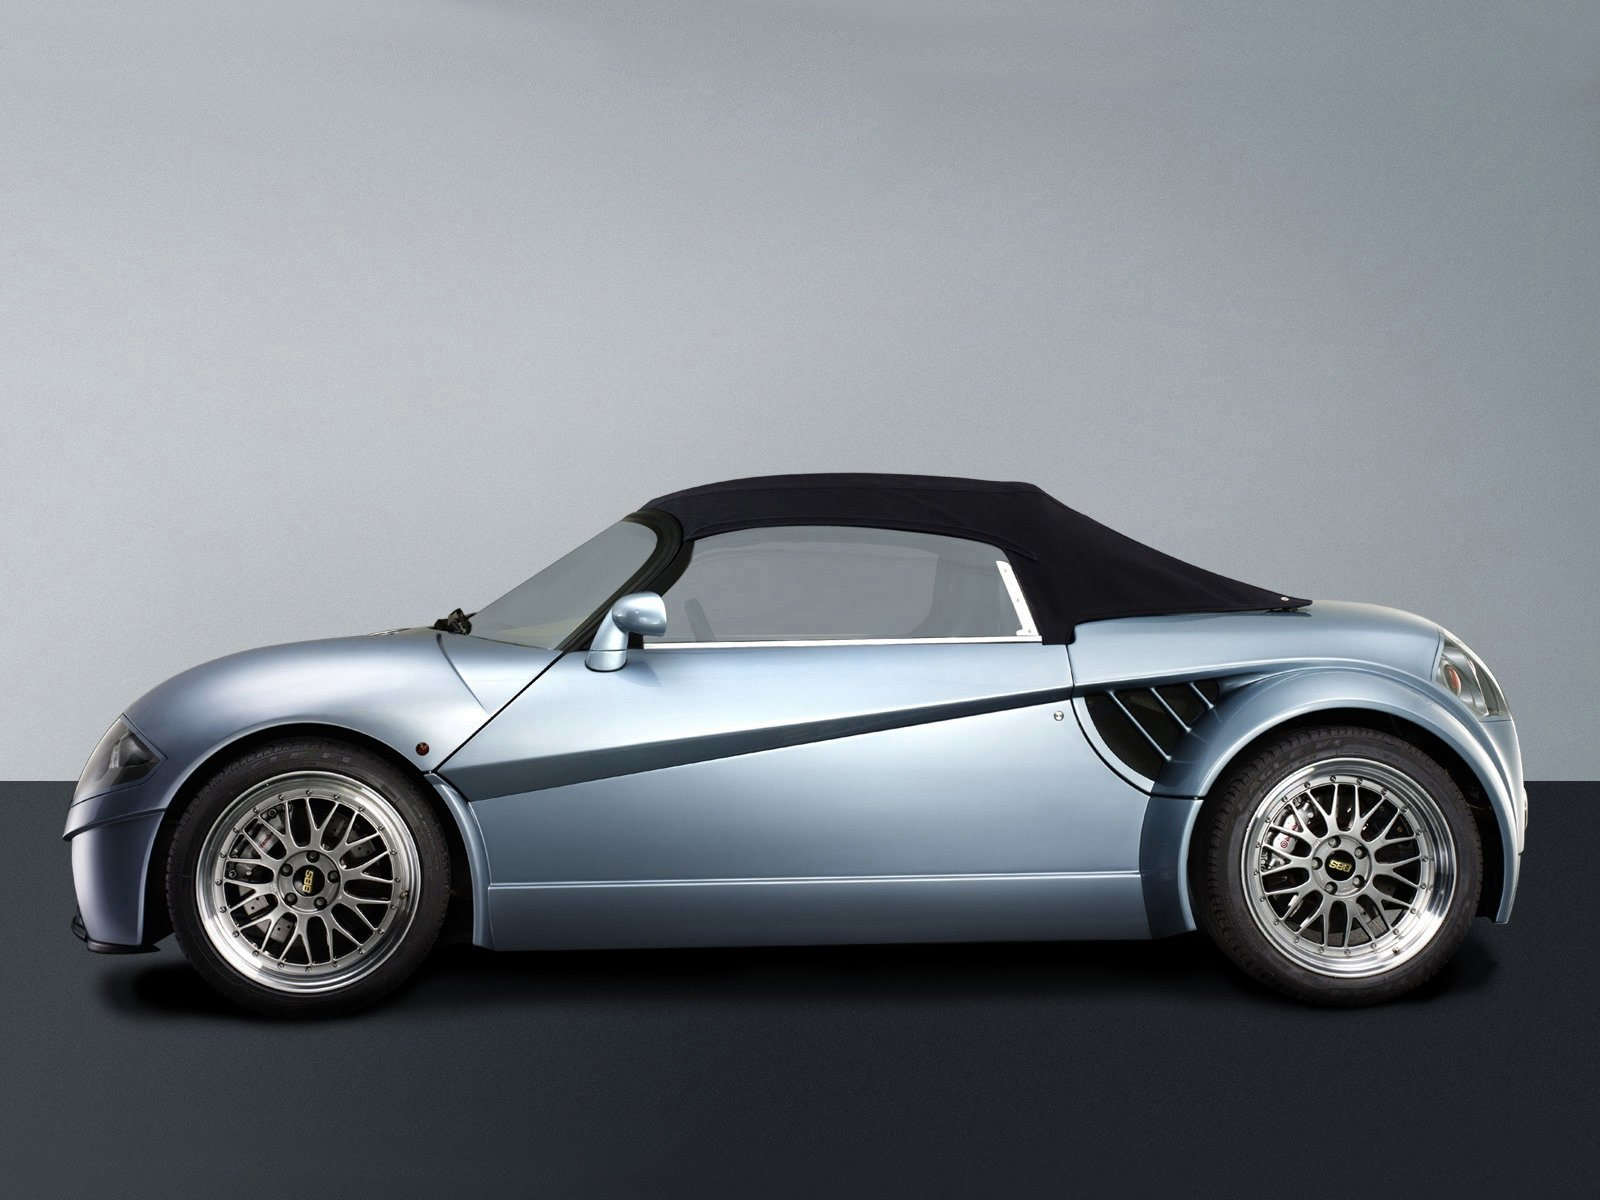 New 2003 Yes Roadster Car Insurance Info Desktop Wallpaper On This Month